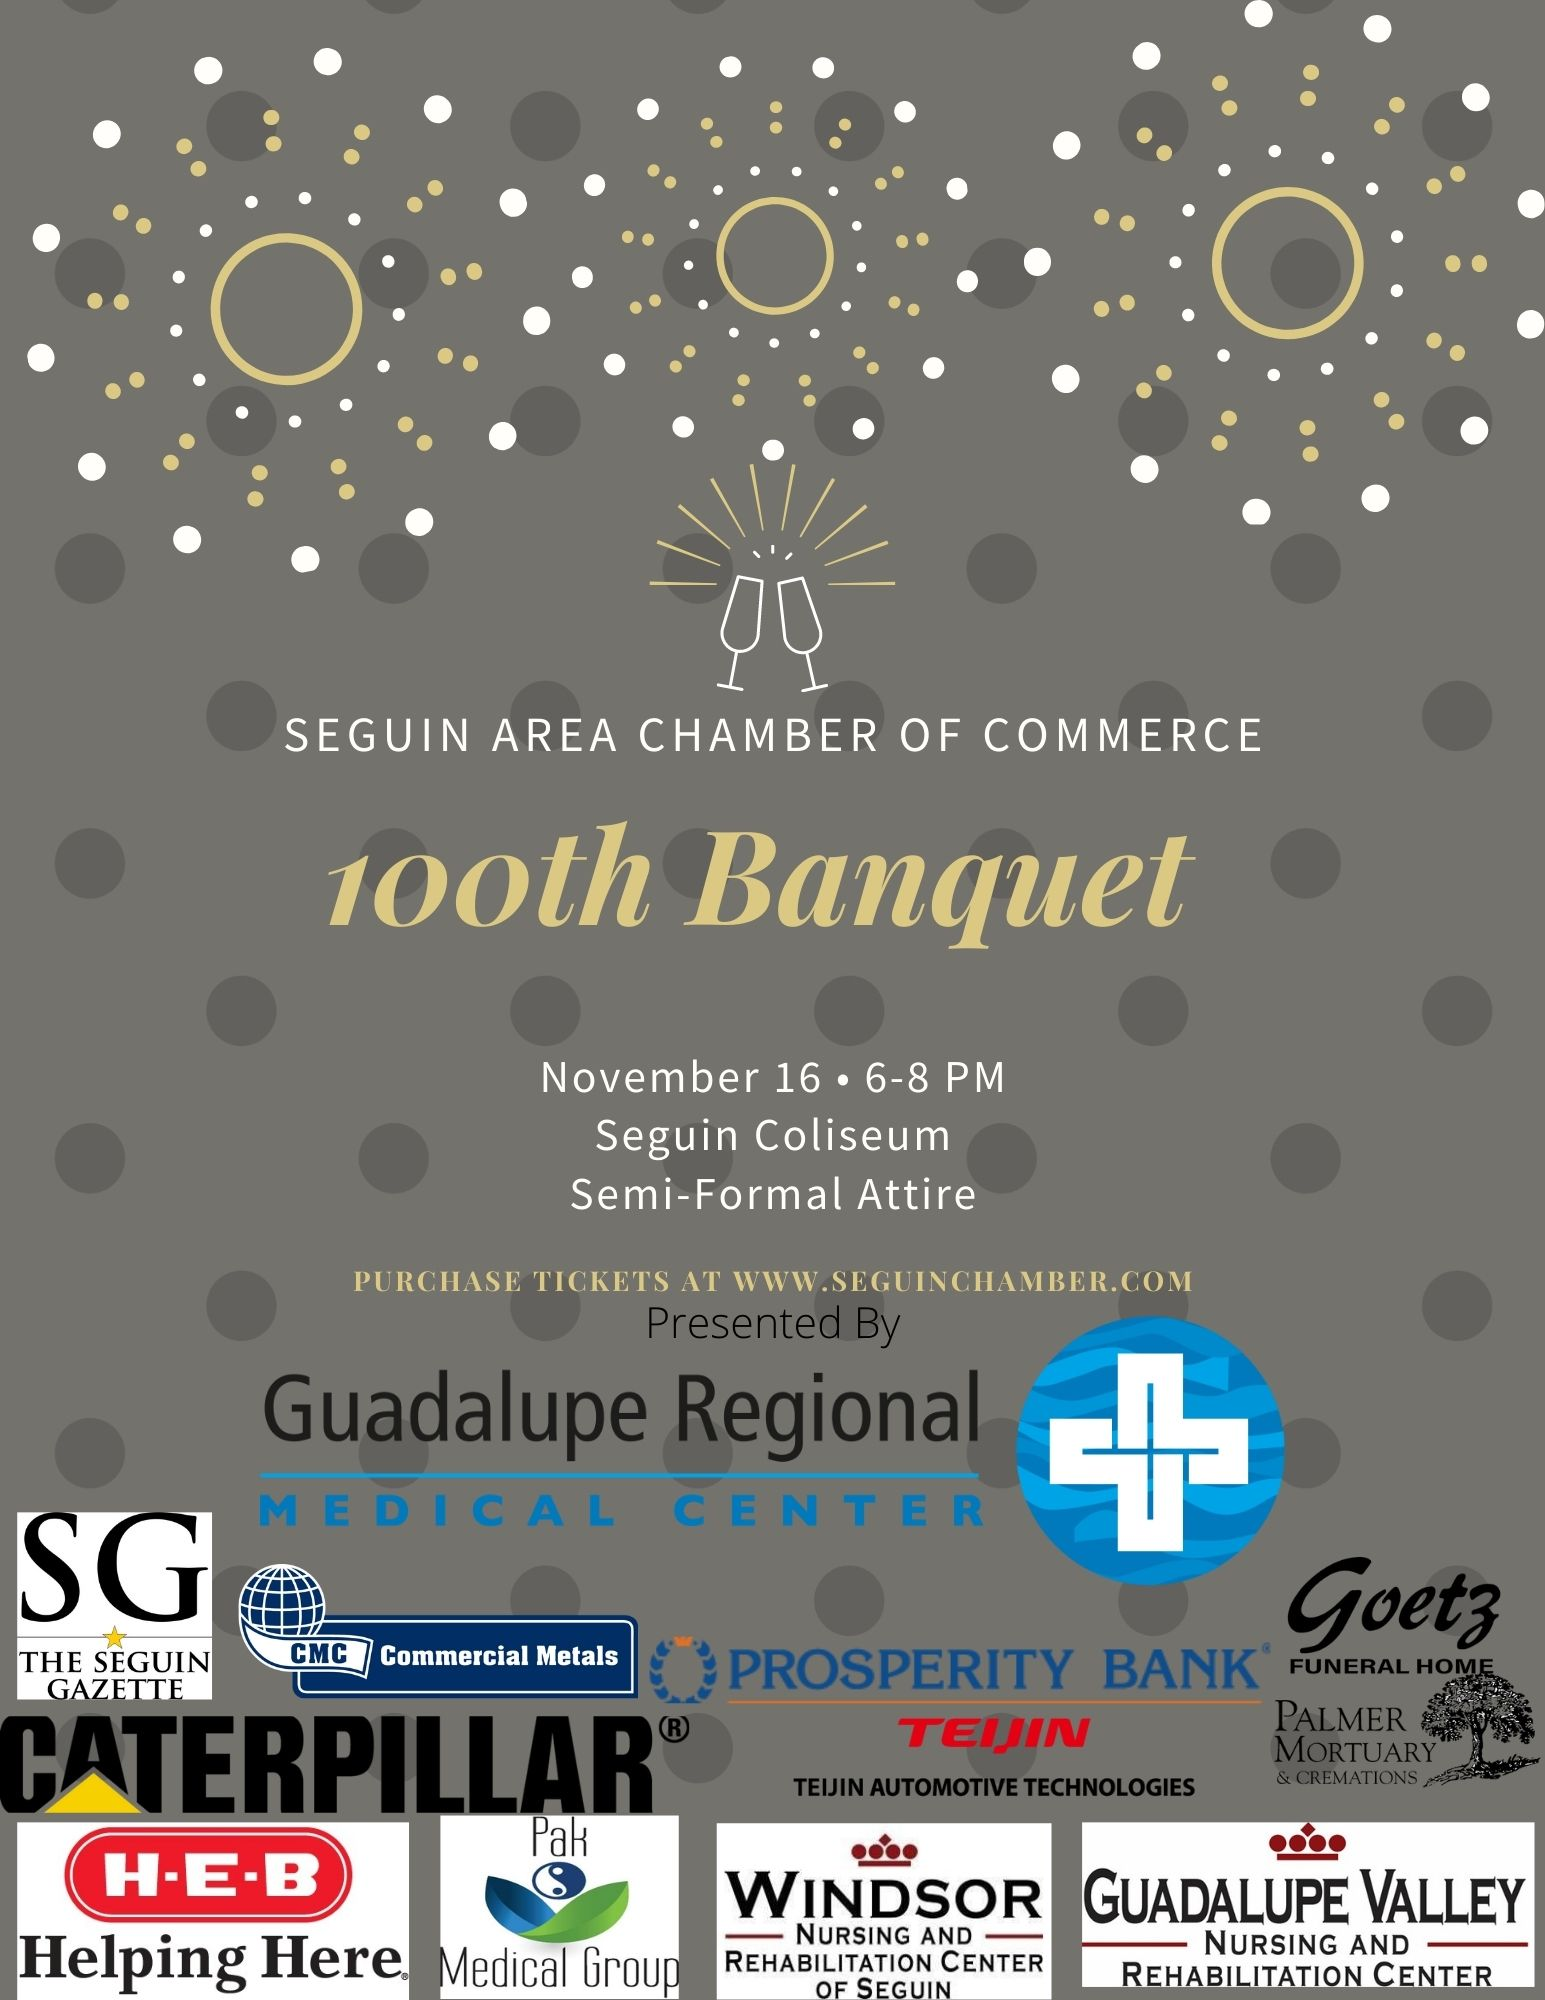 Flyer-version-Invitation-100th-Banquet-with-GRMC-and-all-sponsors-(11-x-8.5-in)-(8.5-x-11-in)-.jpg